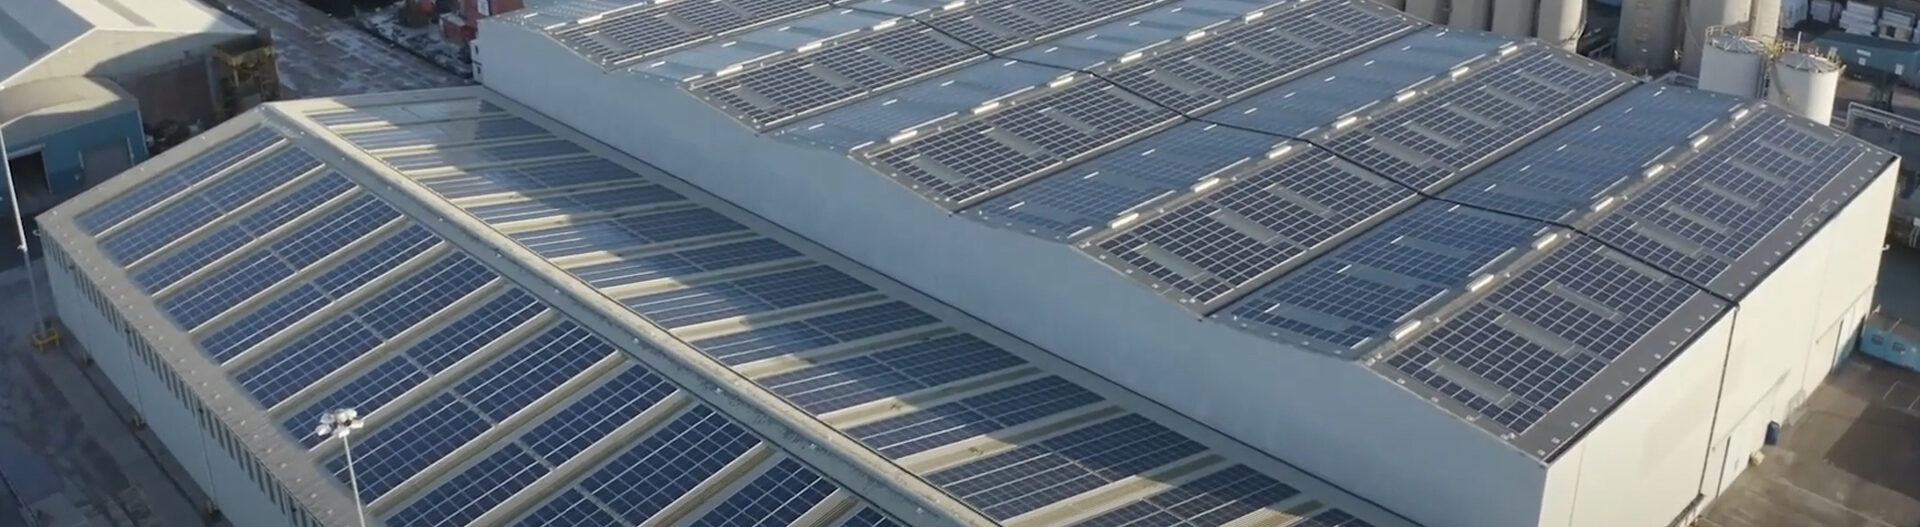 UK's Largest Rooftop Solar Installation | ABP HULL